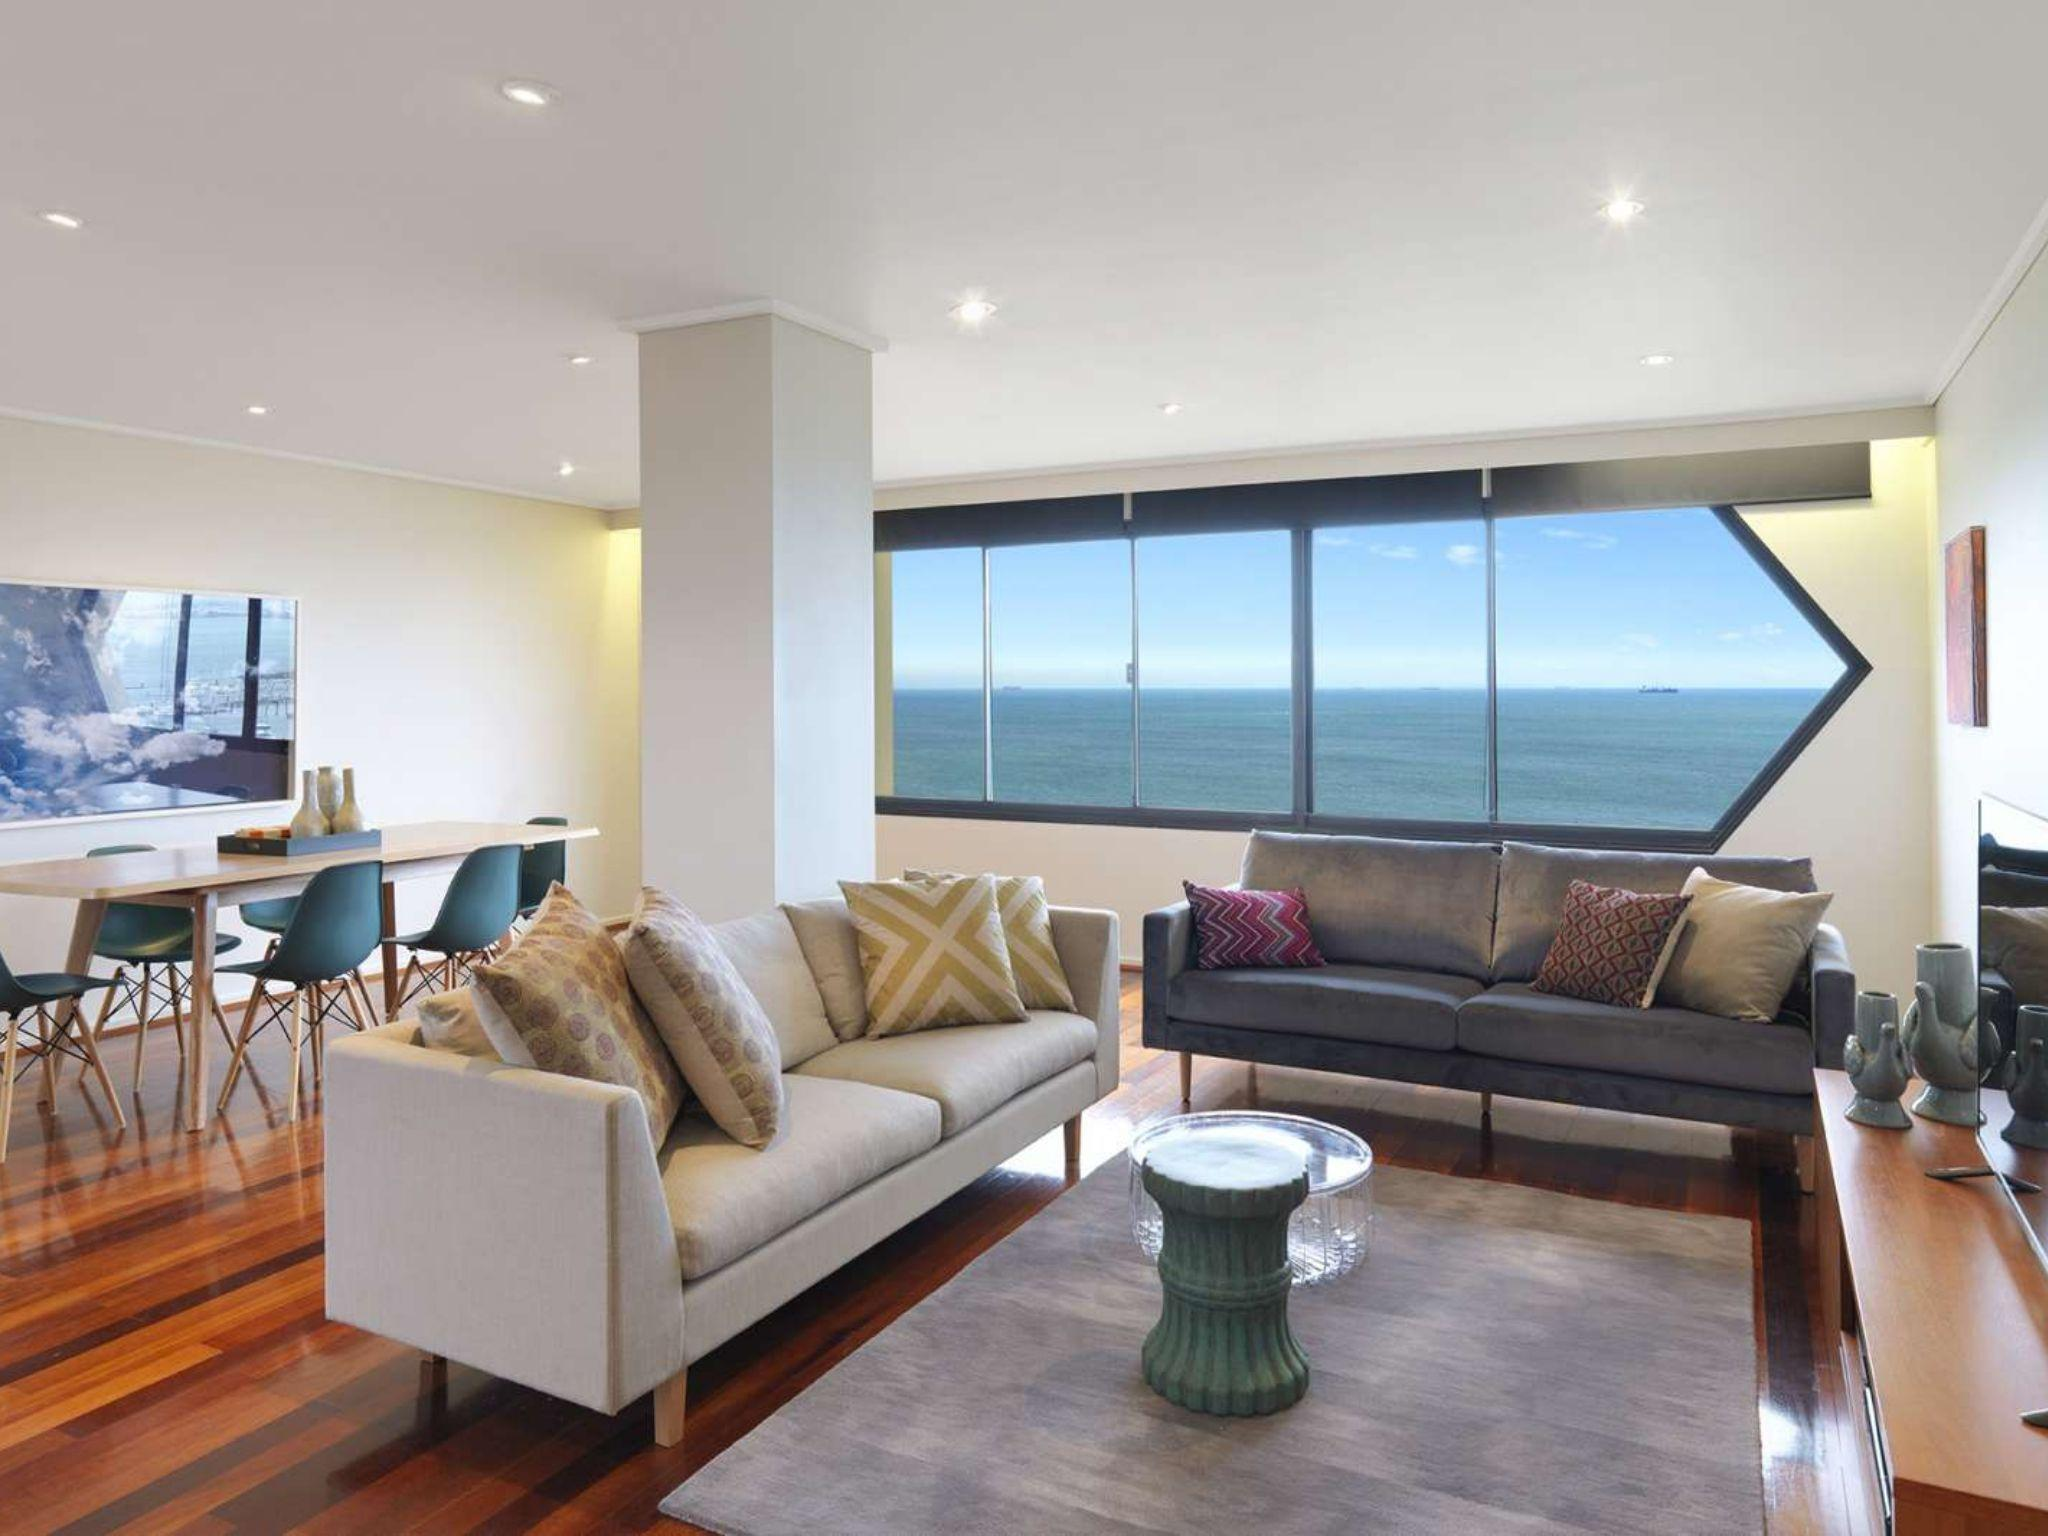 Espresso Apartments Panoramic Views Across The Bay